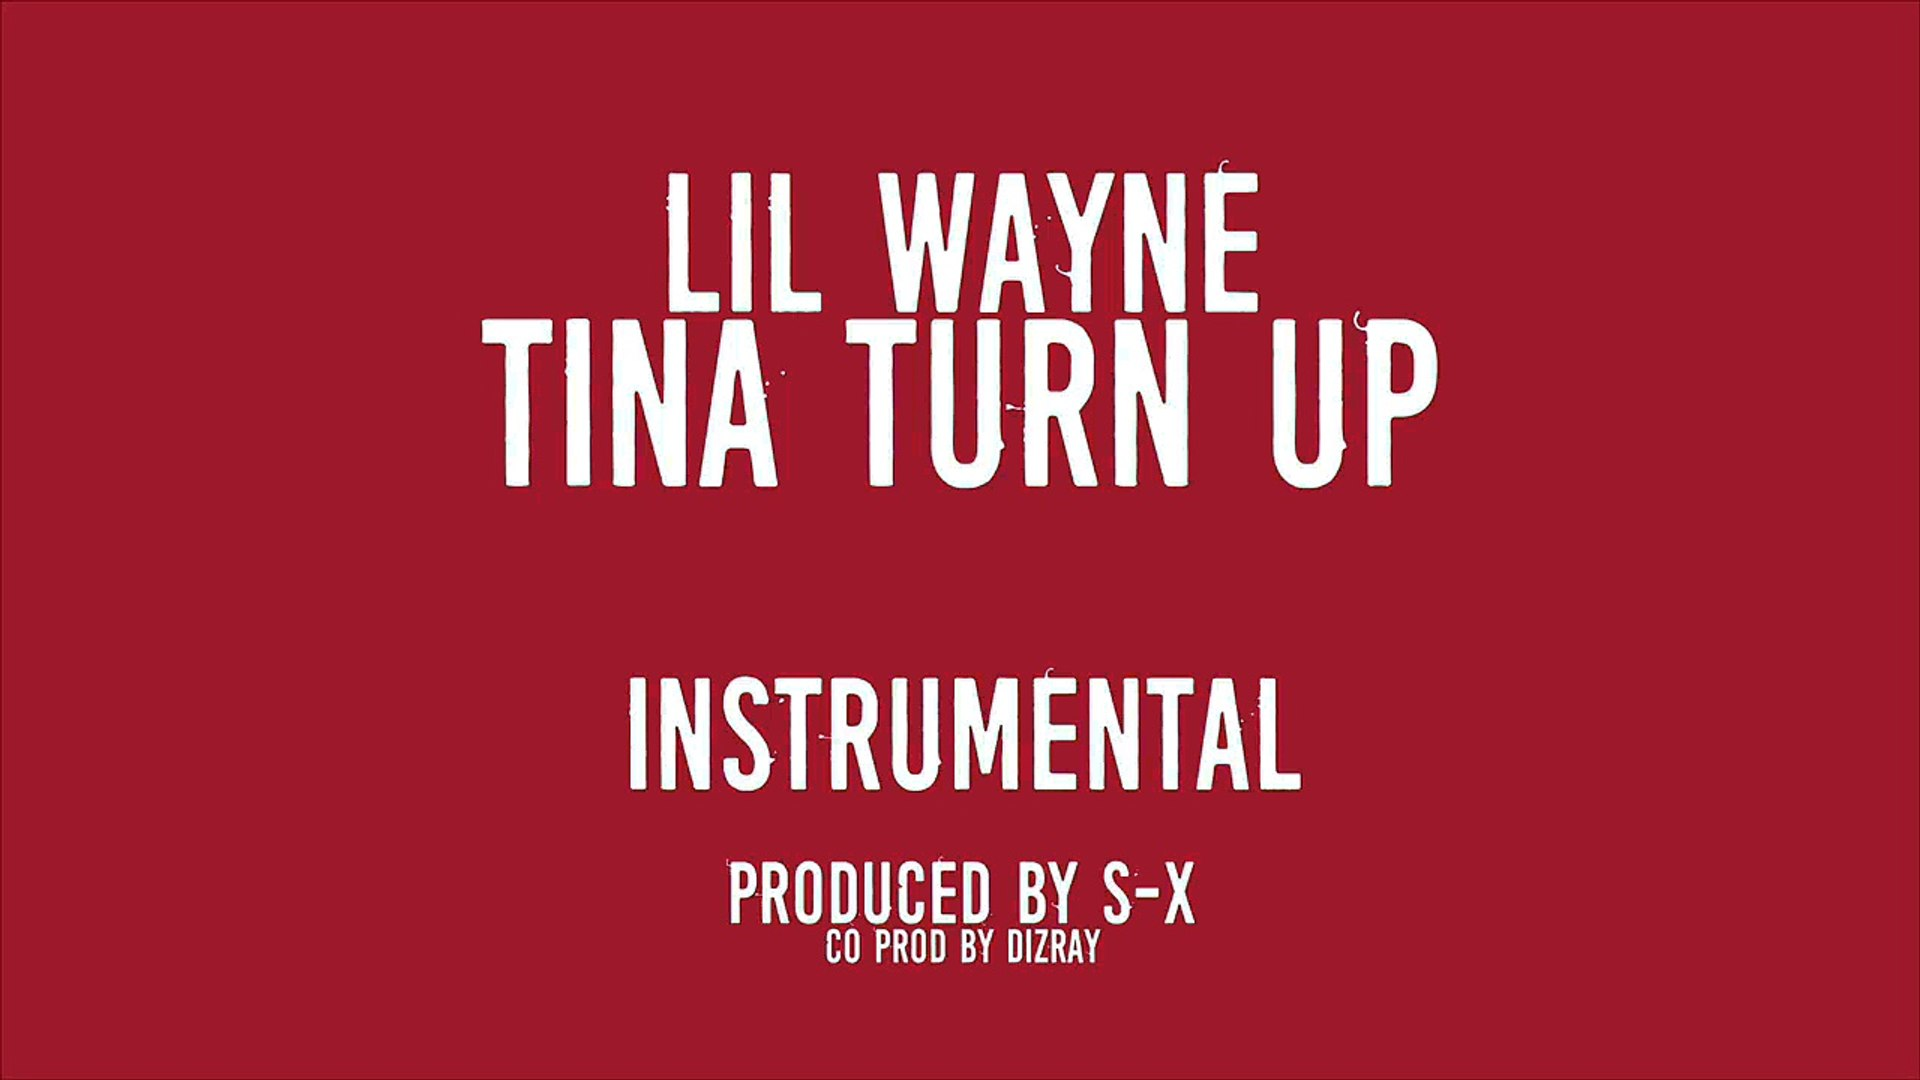 Lil Wayne Tina Turn Up Official Instrumental Produced By S X